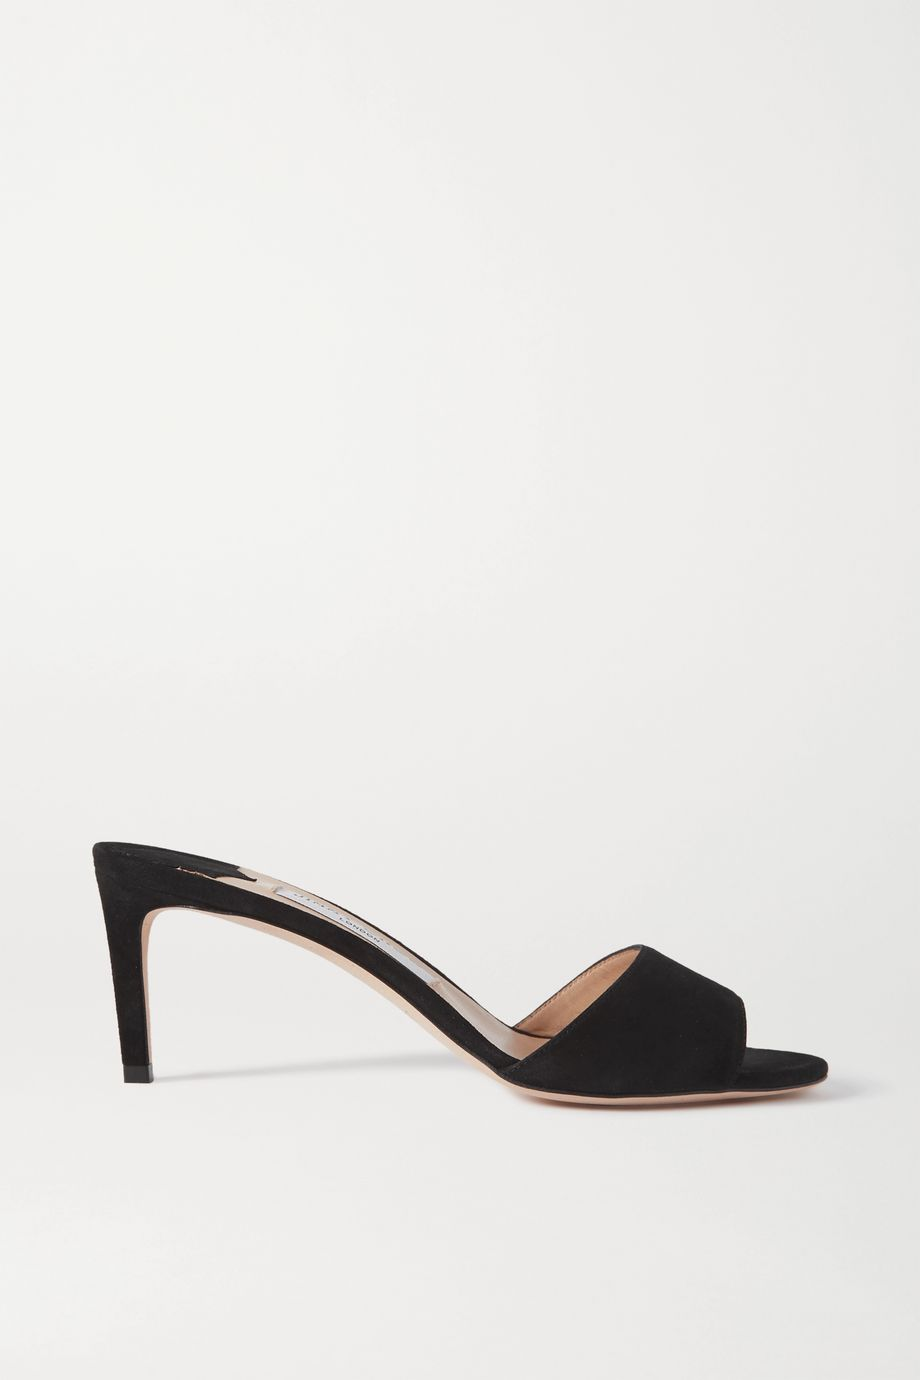 Jimmy Choo Stacey 65 suede mules